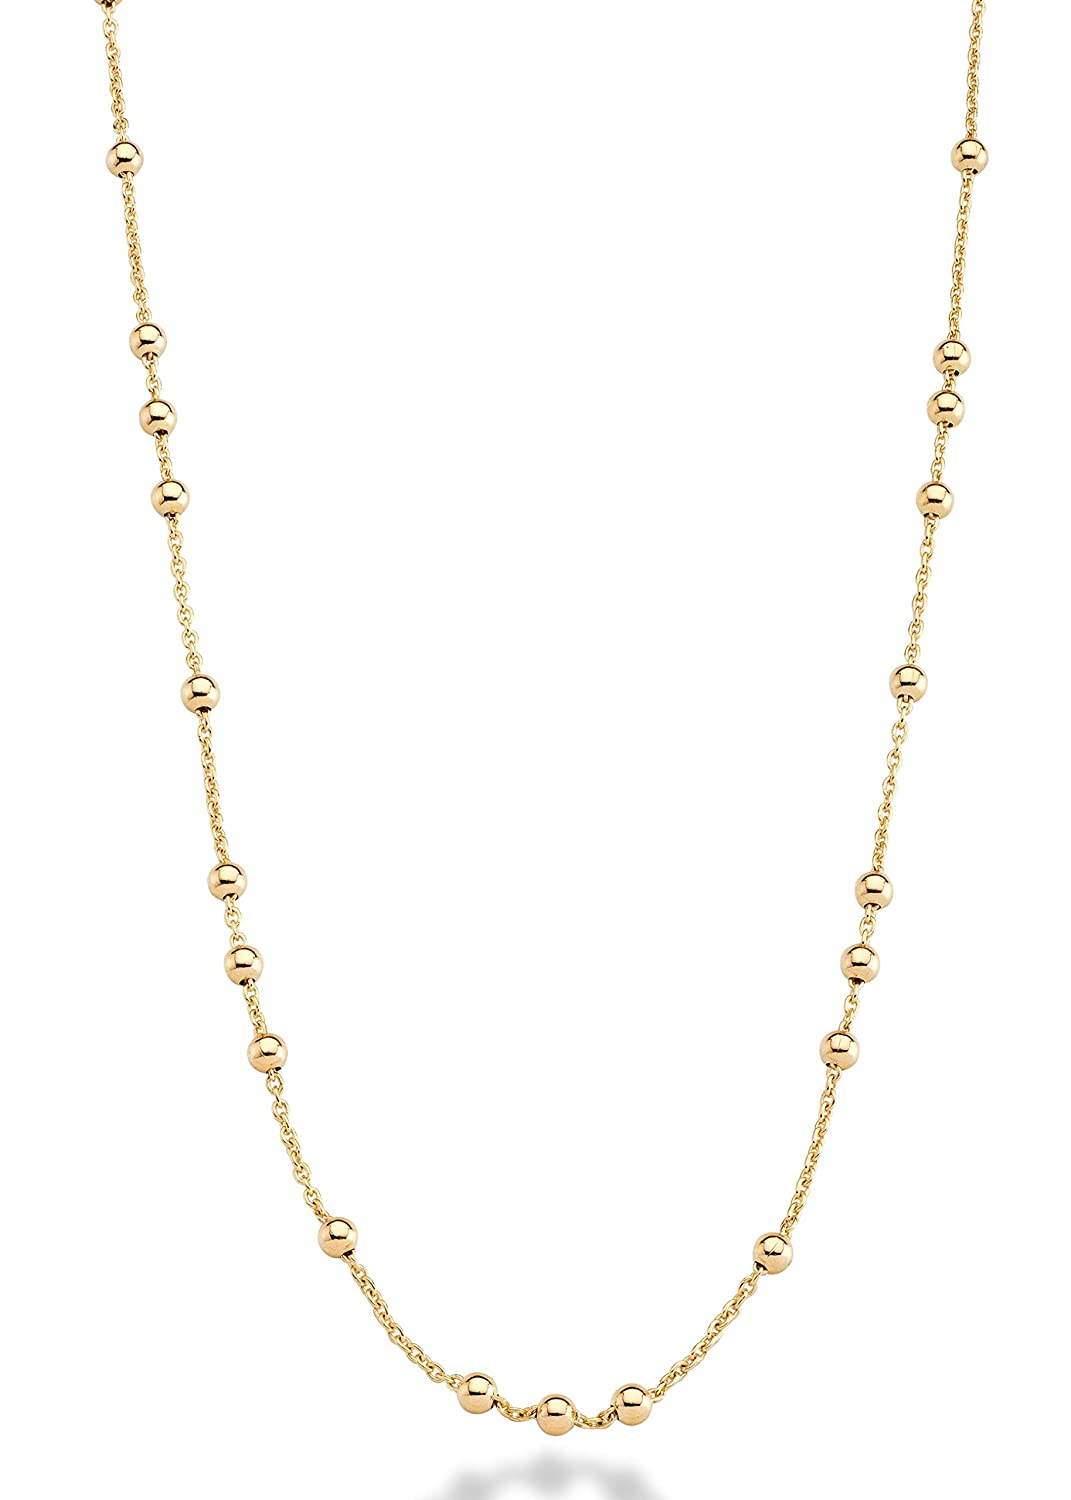 MiaBella 18K Yellow or Rose Gold Over Bronze Italian Bead Ball Rosary Long Wrap Layering Station Chain Necklace for Women Dversa Inc 3537 60 60 Rose-Gold-Plated-Bronze